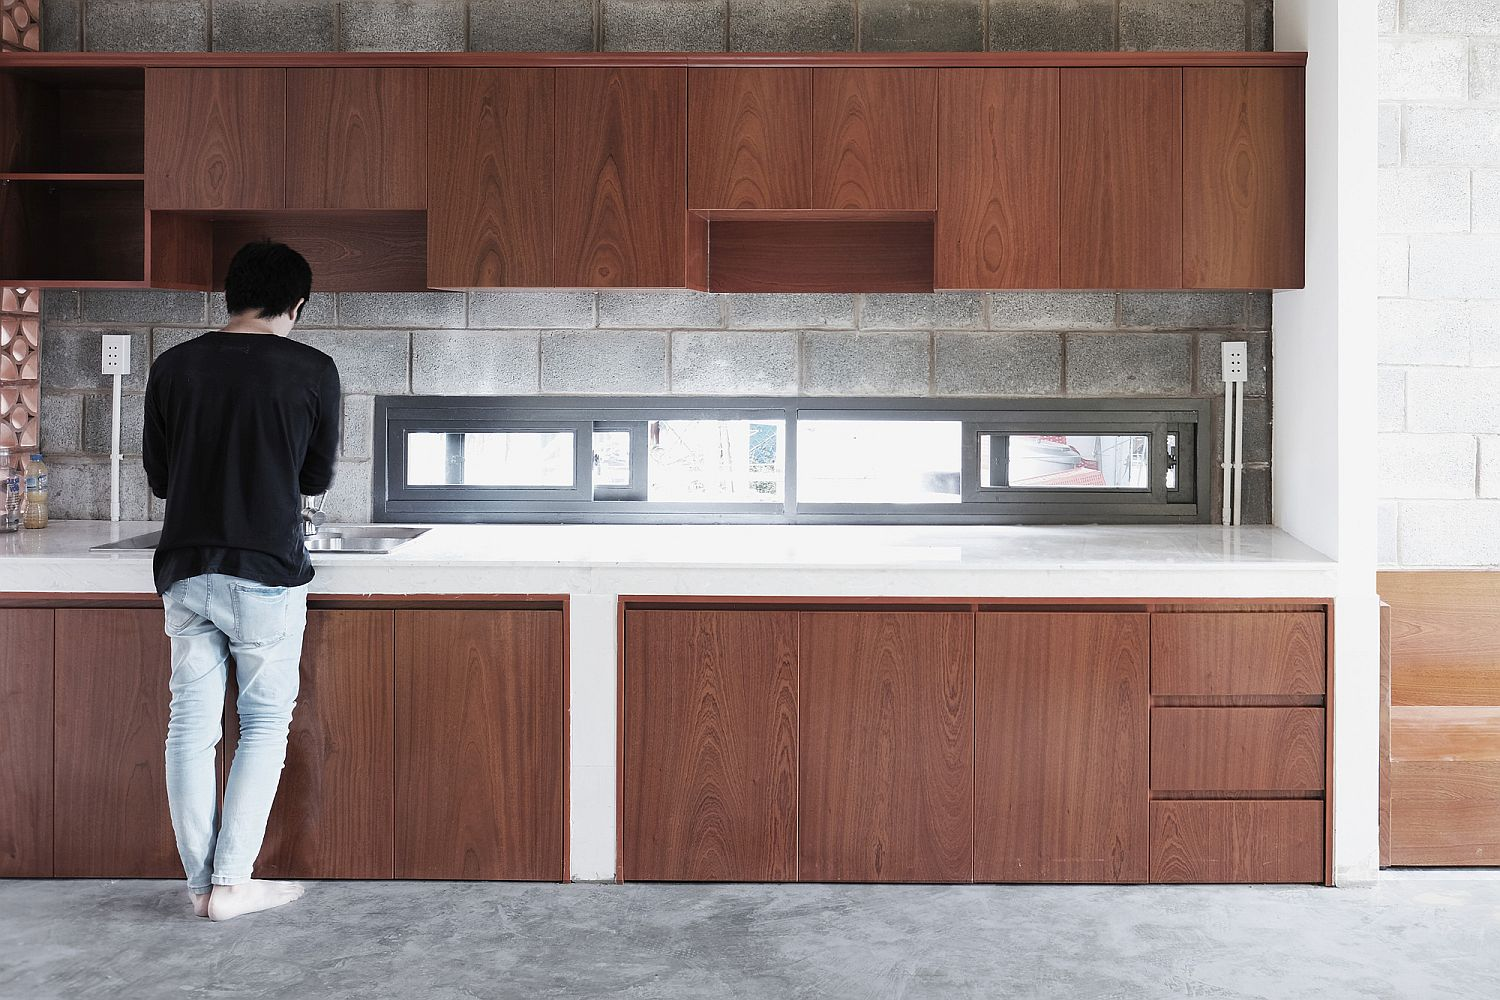 Small and narrow window above the kitchen station brings in natural light